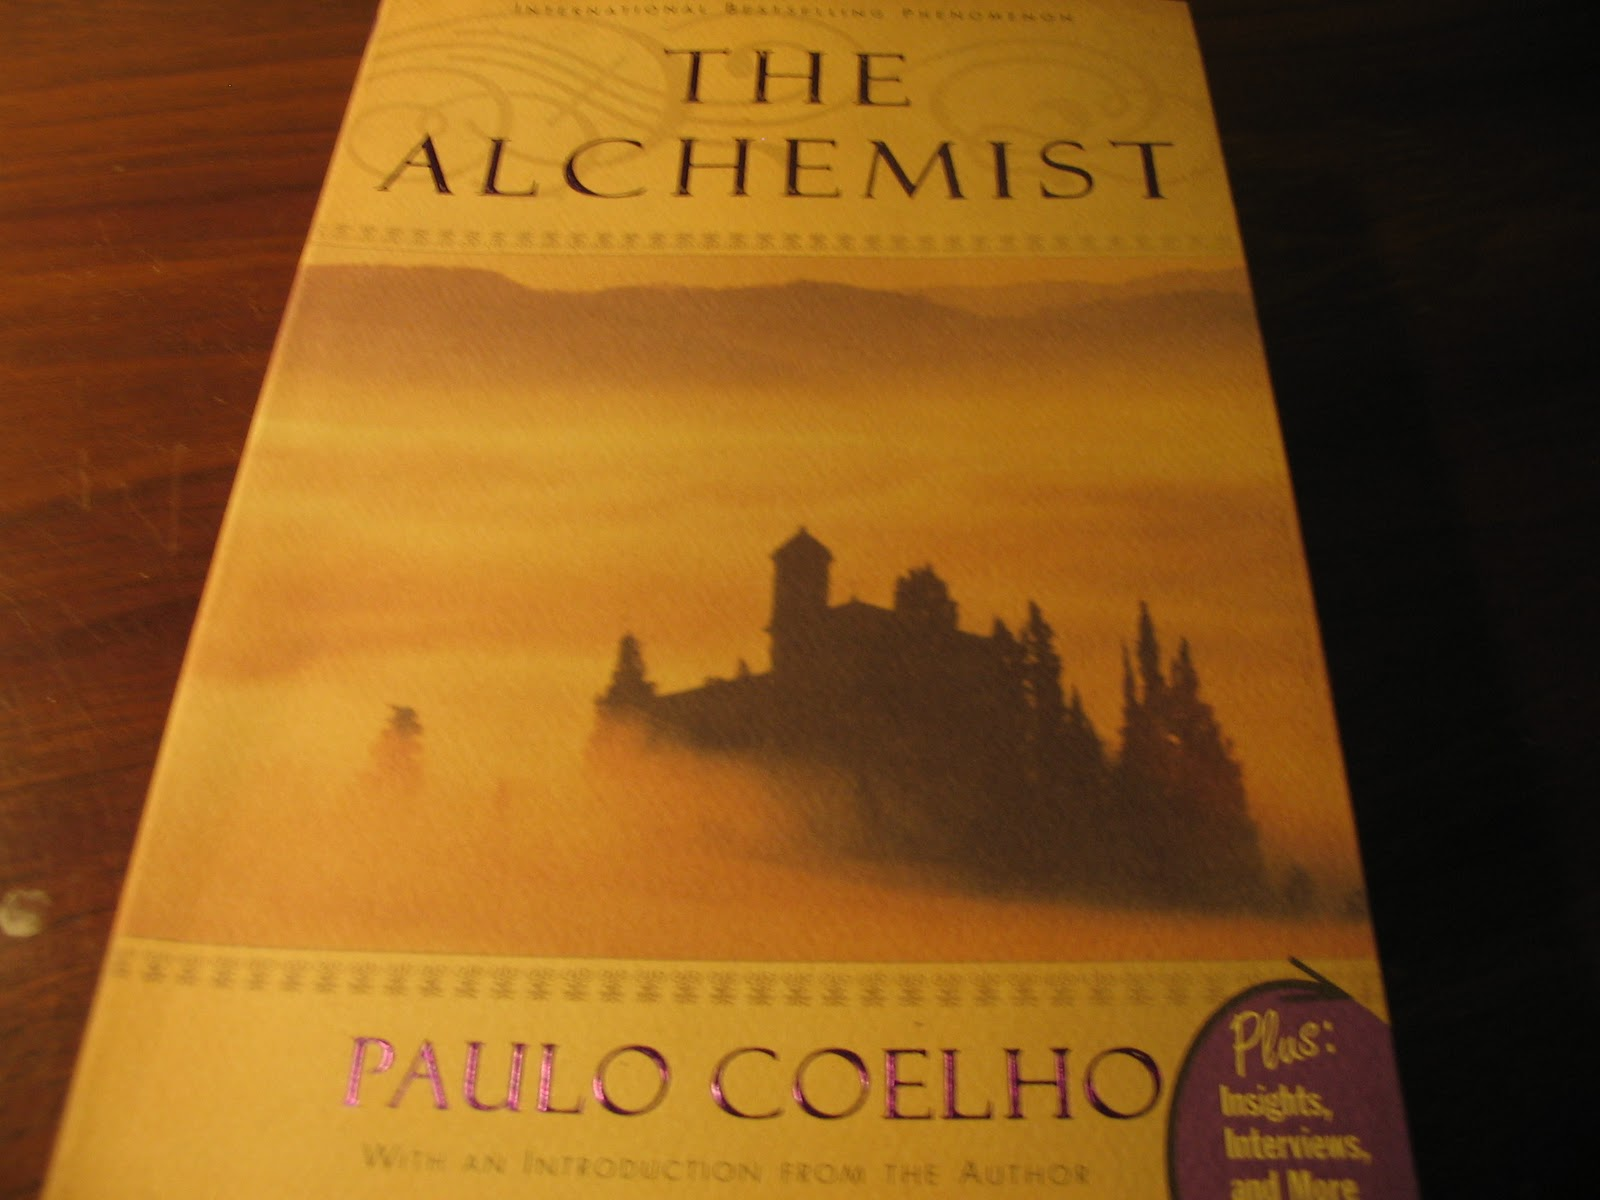 the alchemist by paulo coelho i am here to live out loud the alchemist